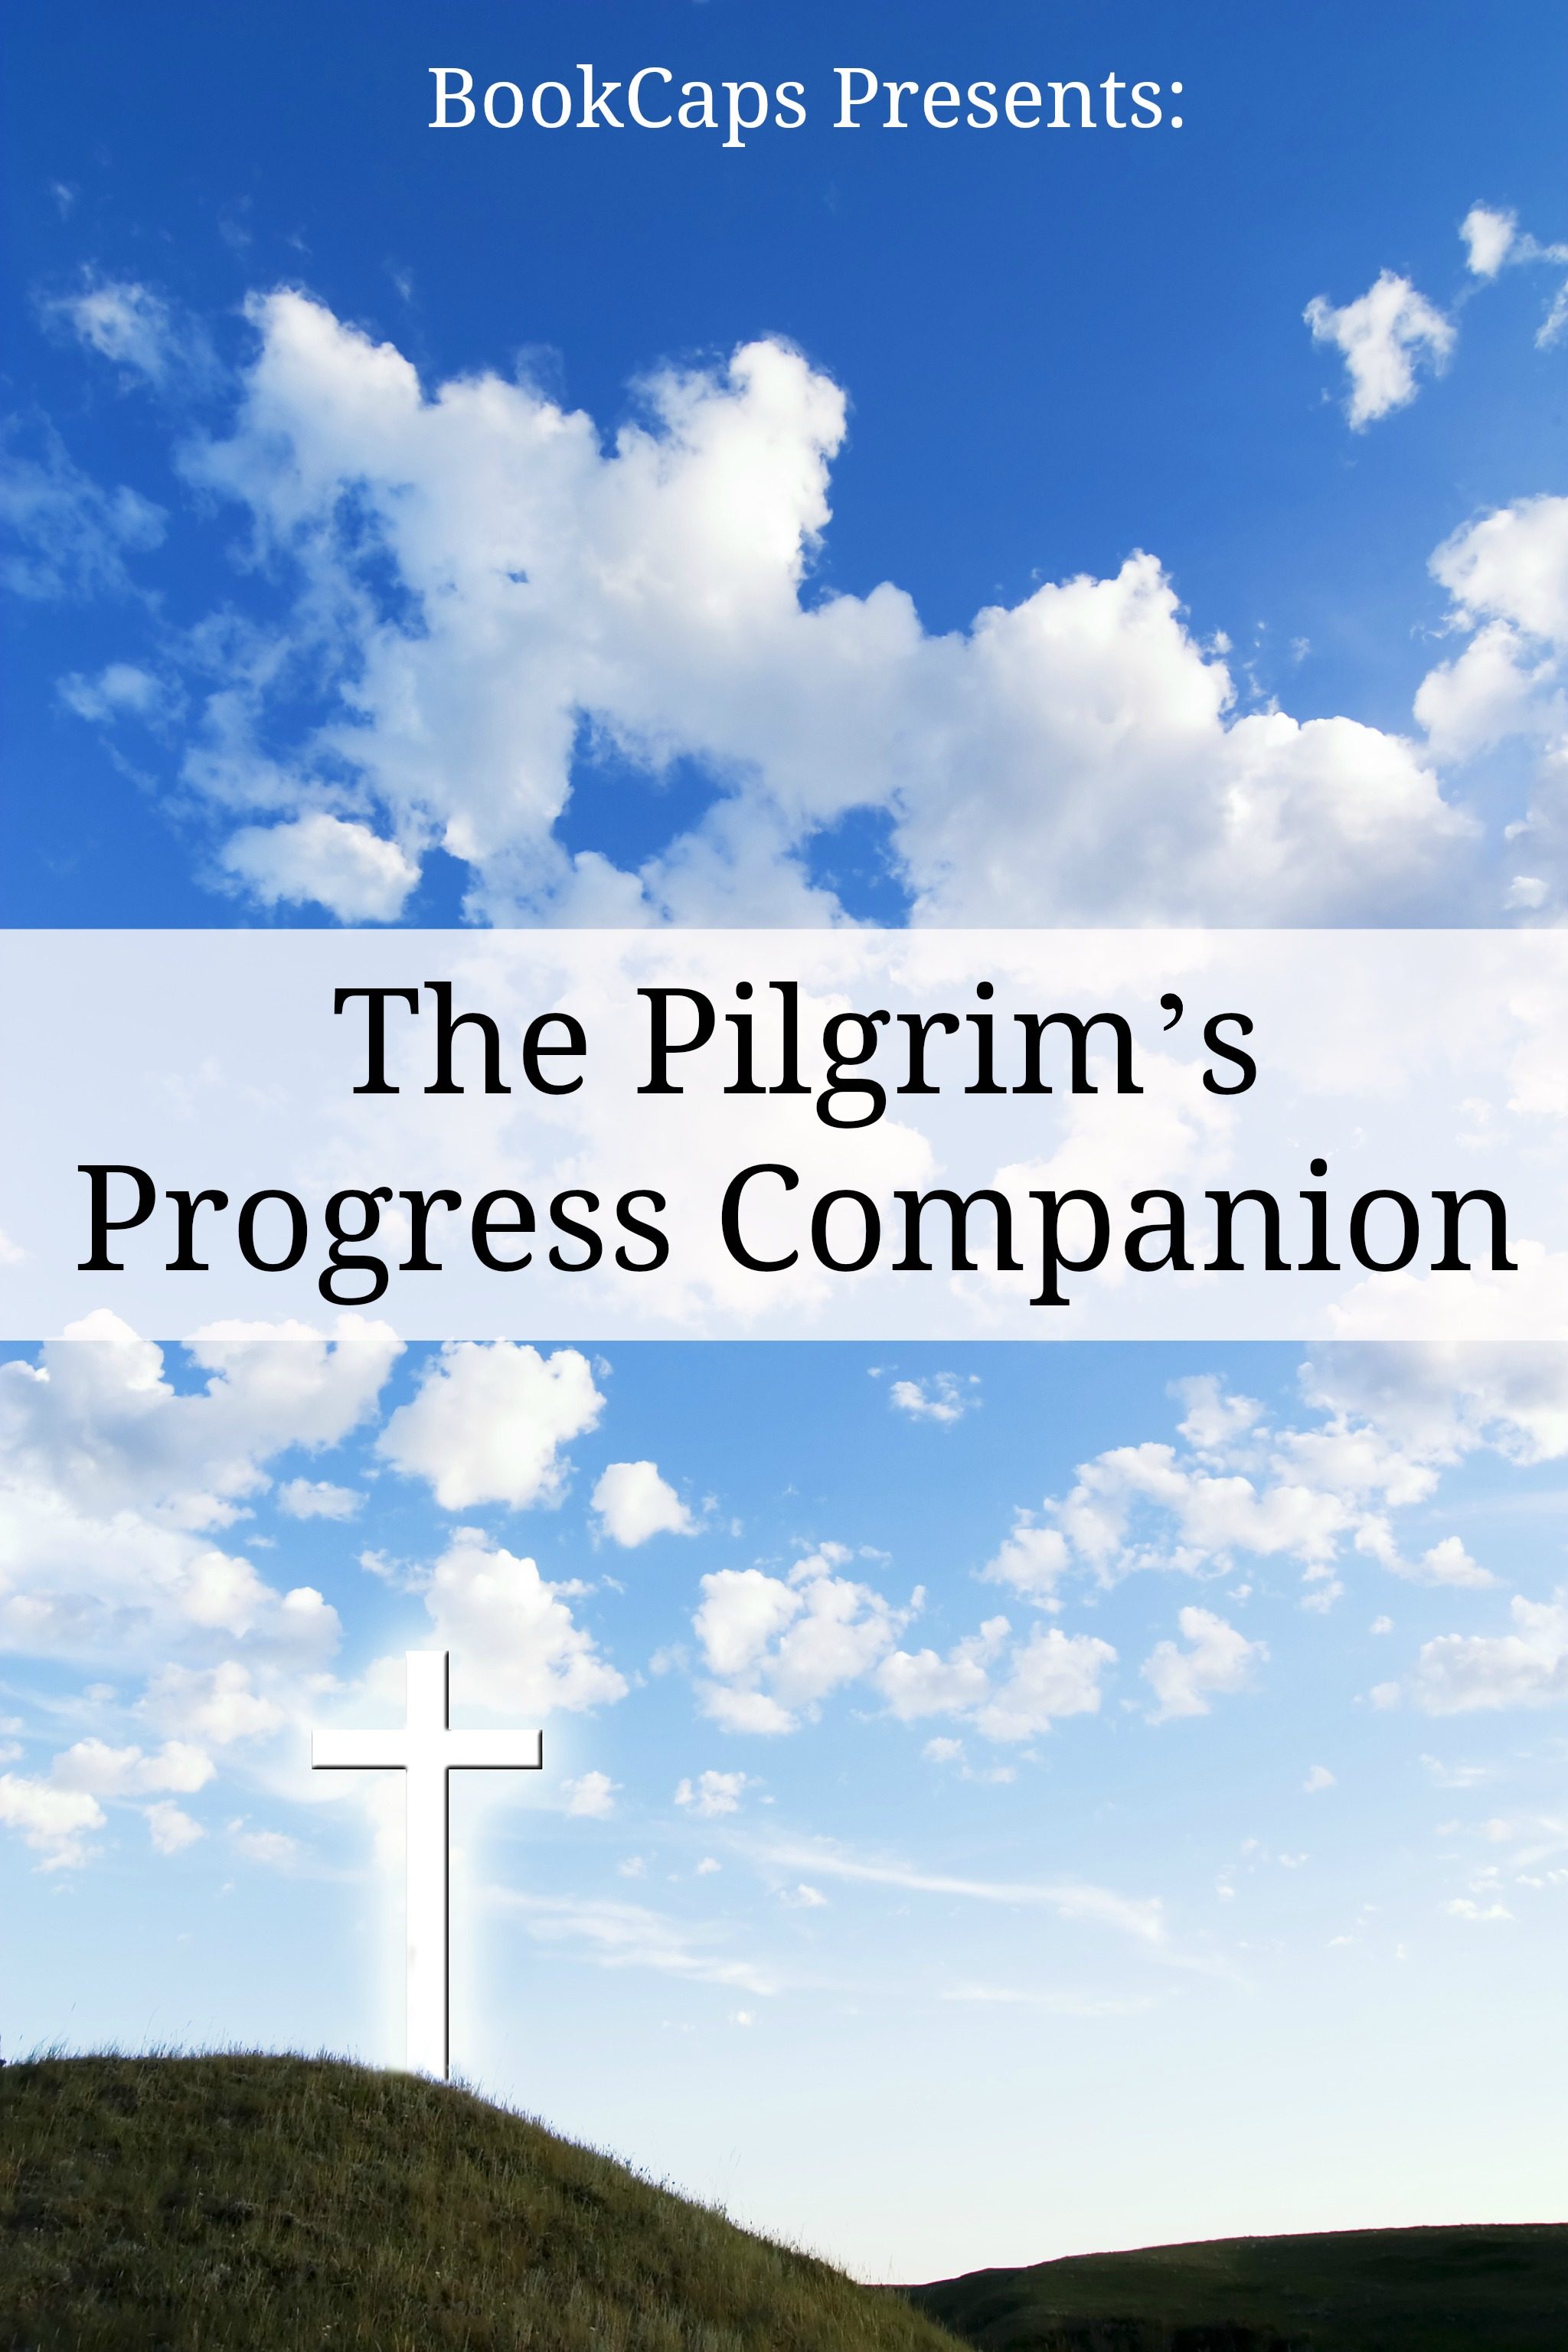 BookCaps - The Pilgrim's Progress Companion